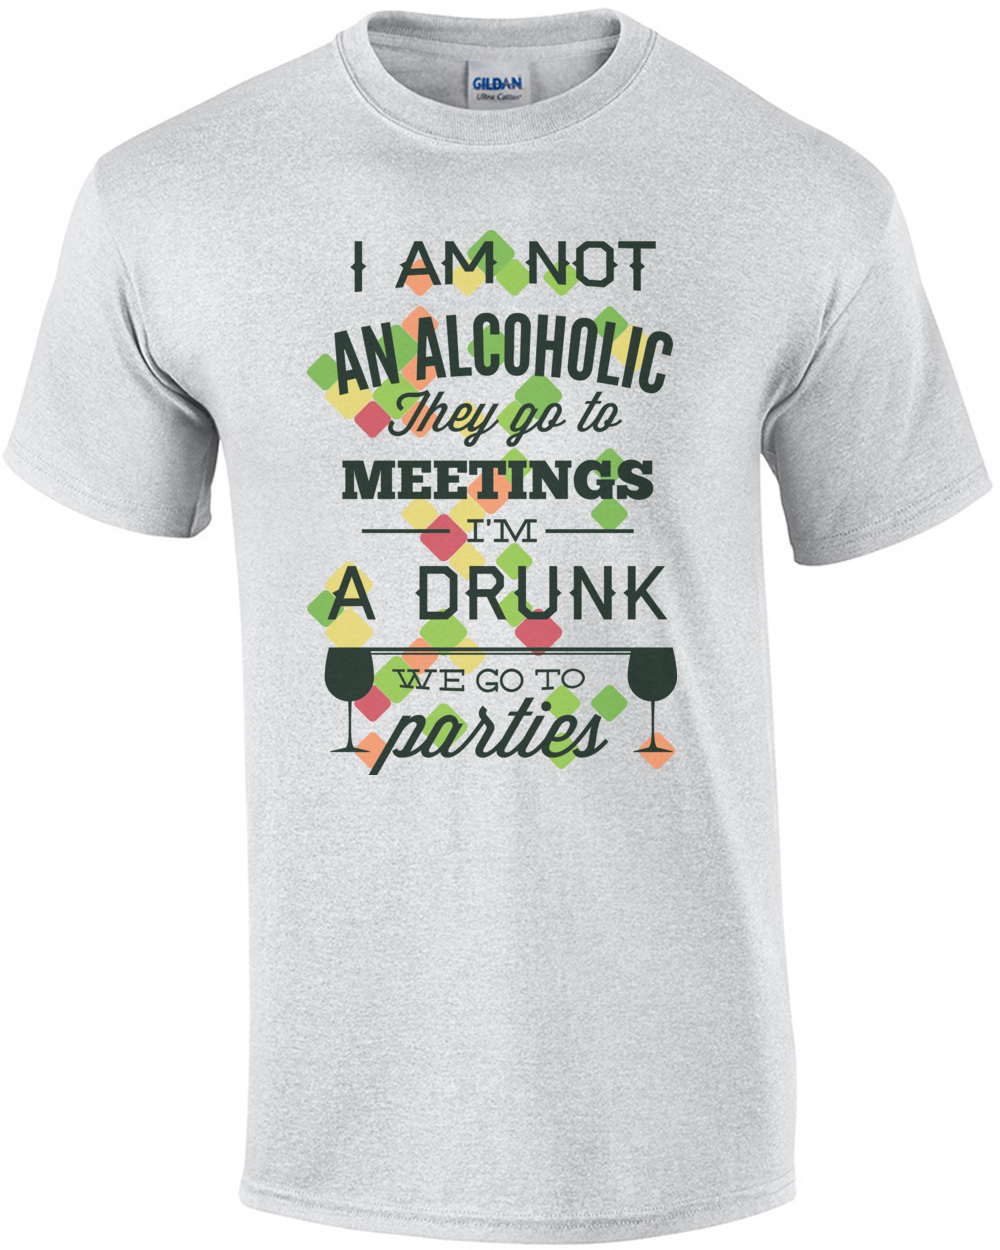 aa3fc68f im-not-an-alcoholic-they-go-to-meetings-im-a-drunk-we-go-to-parties-tshirt -mens-regular-ash.jpg